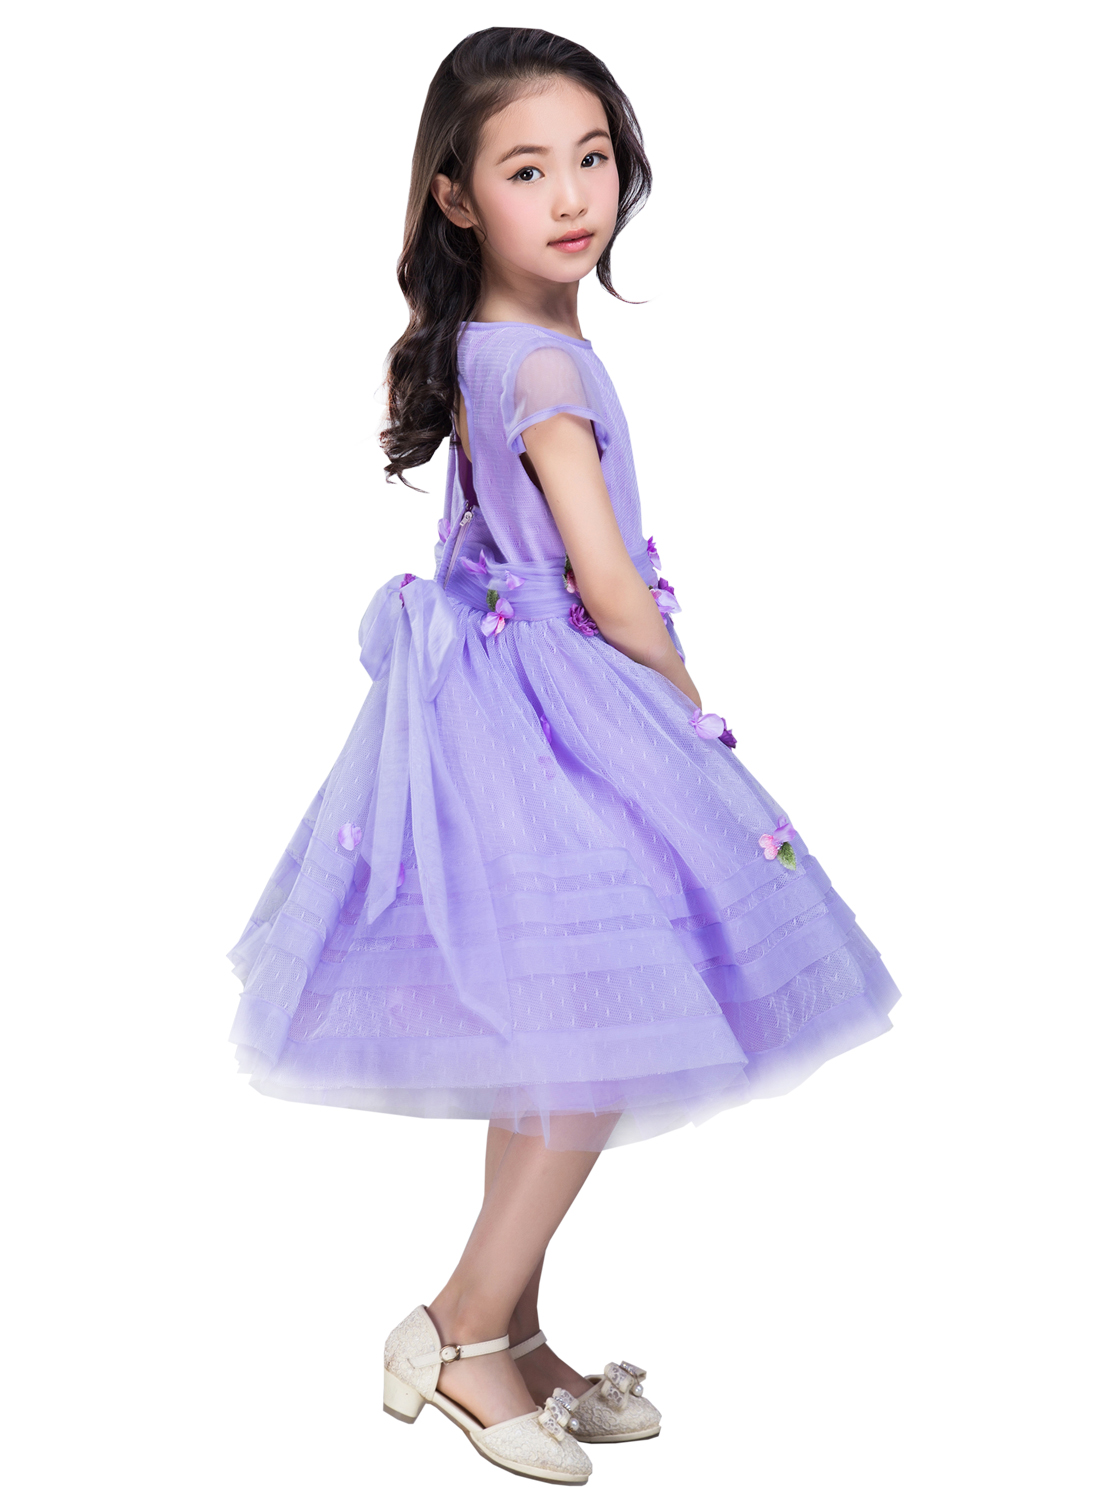 Emondora Flower Girl Lace Dress Princess Formal Birthday Party Dresses